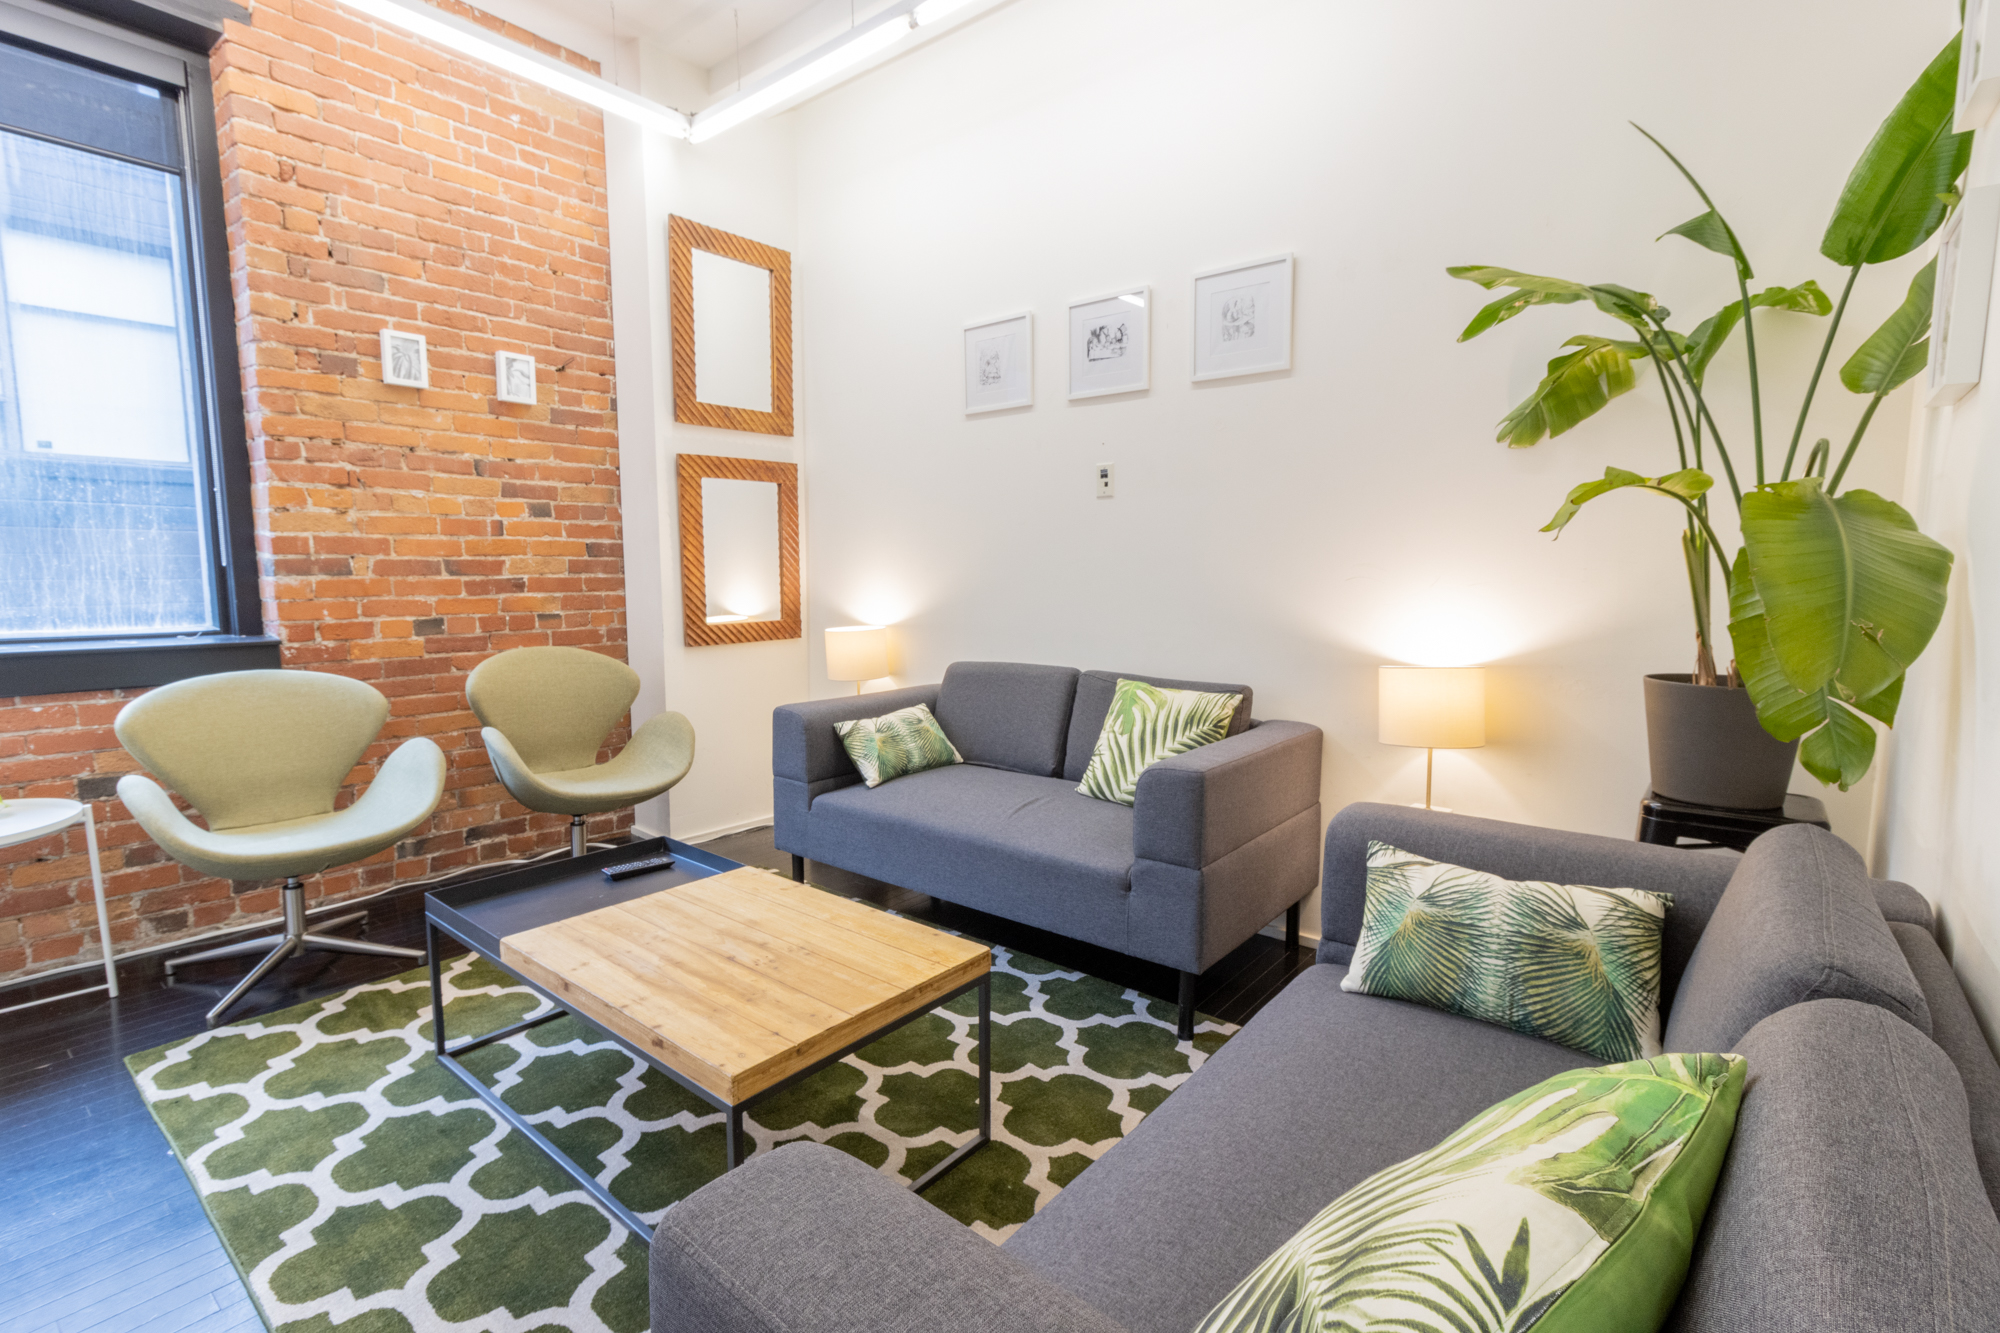 Rent the Green Room Lounge for Meetings at StartWell